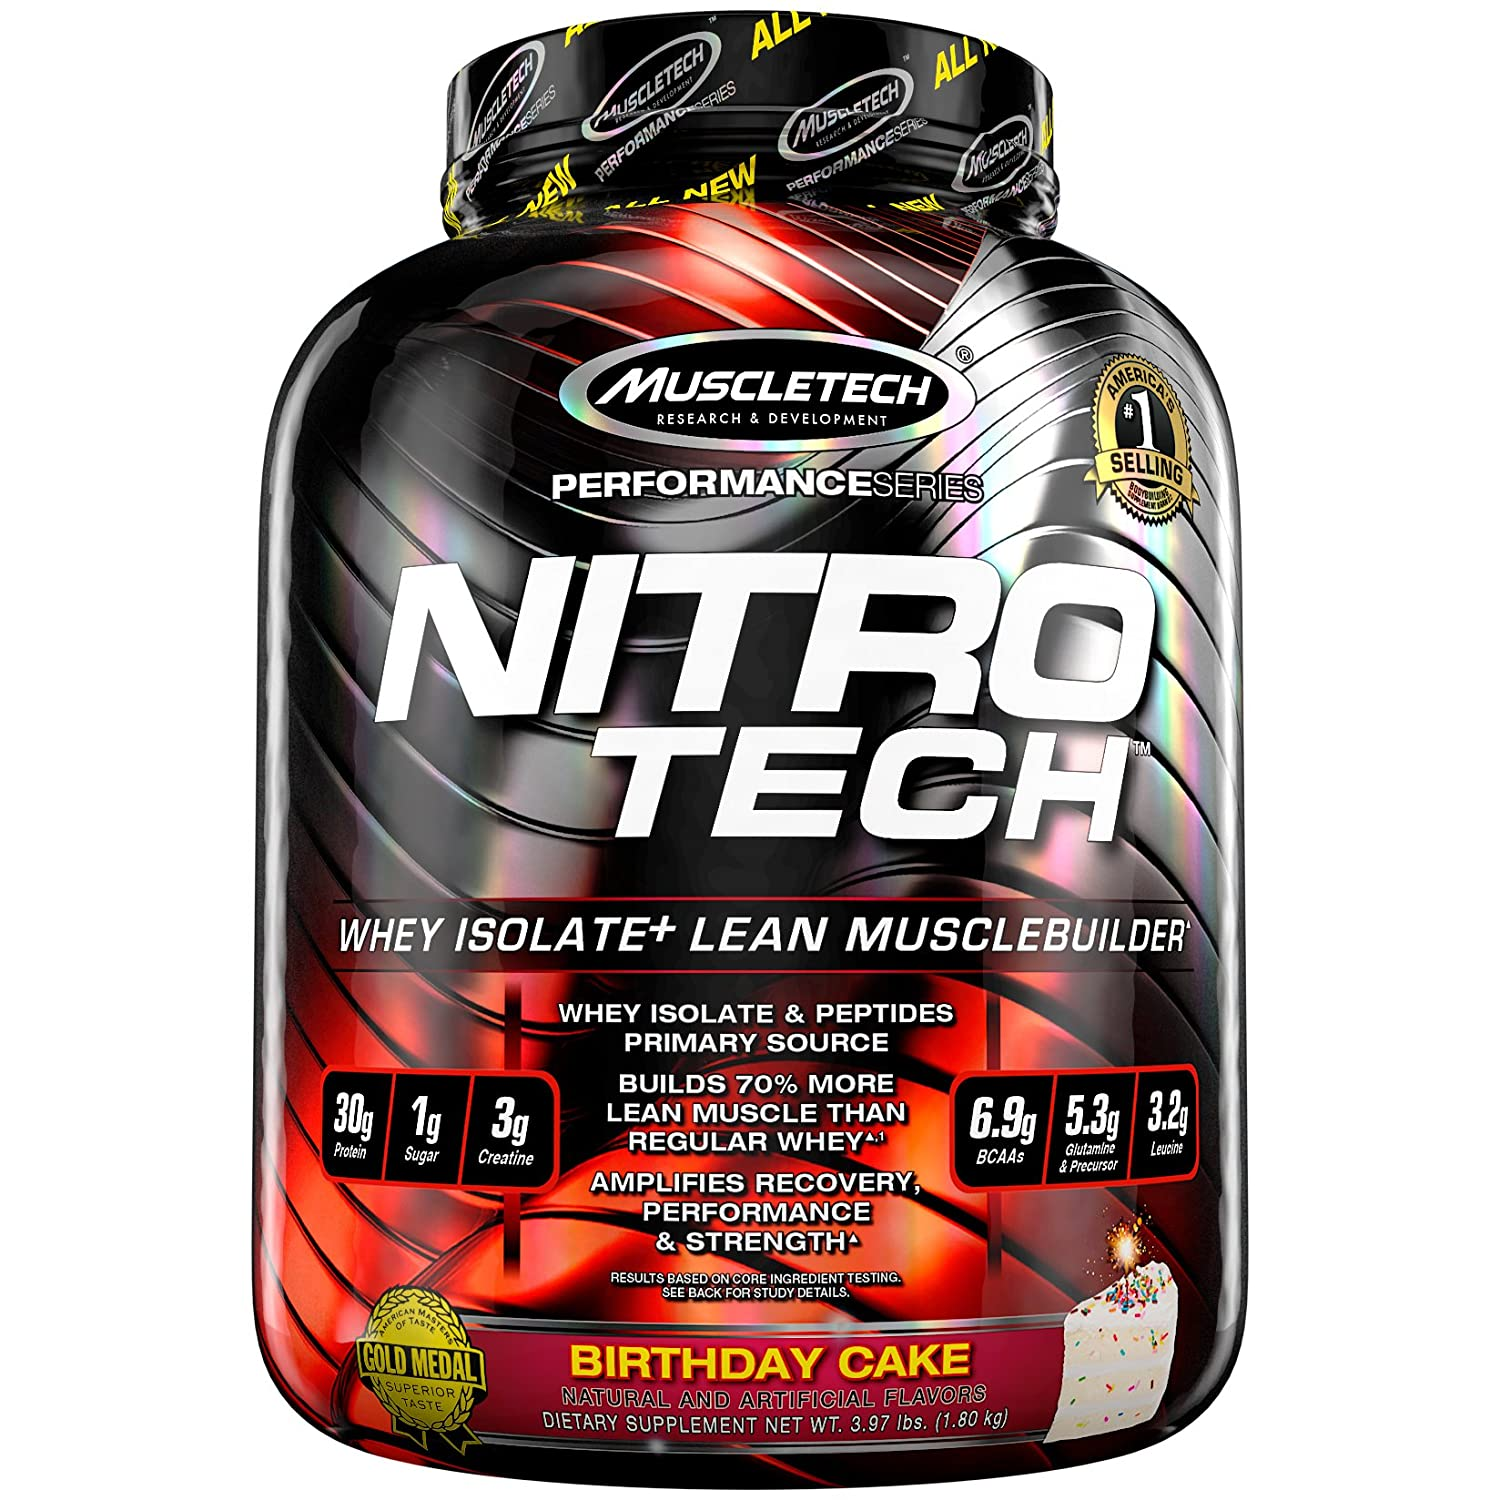 MuscleTech NitroTech Protein Powder 100 Whey With Isolate